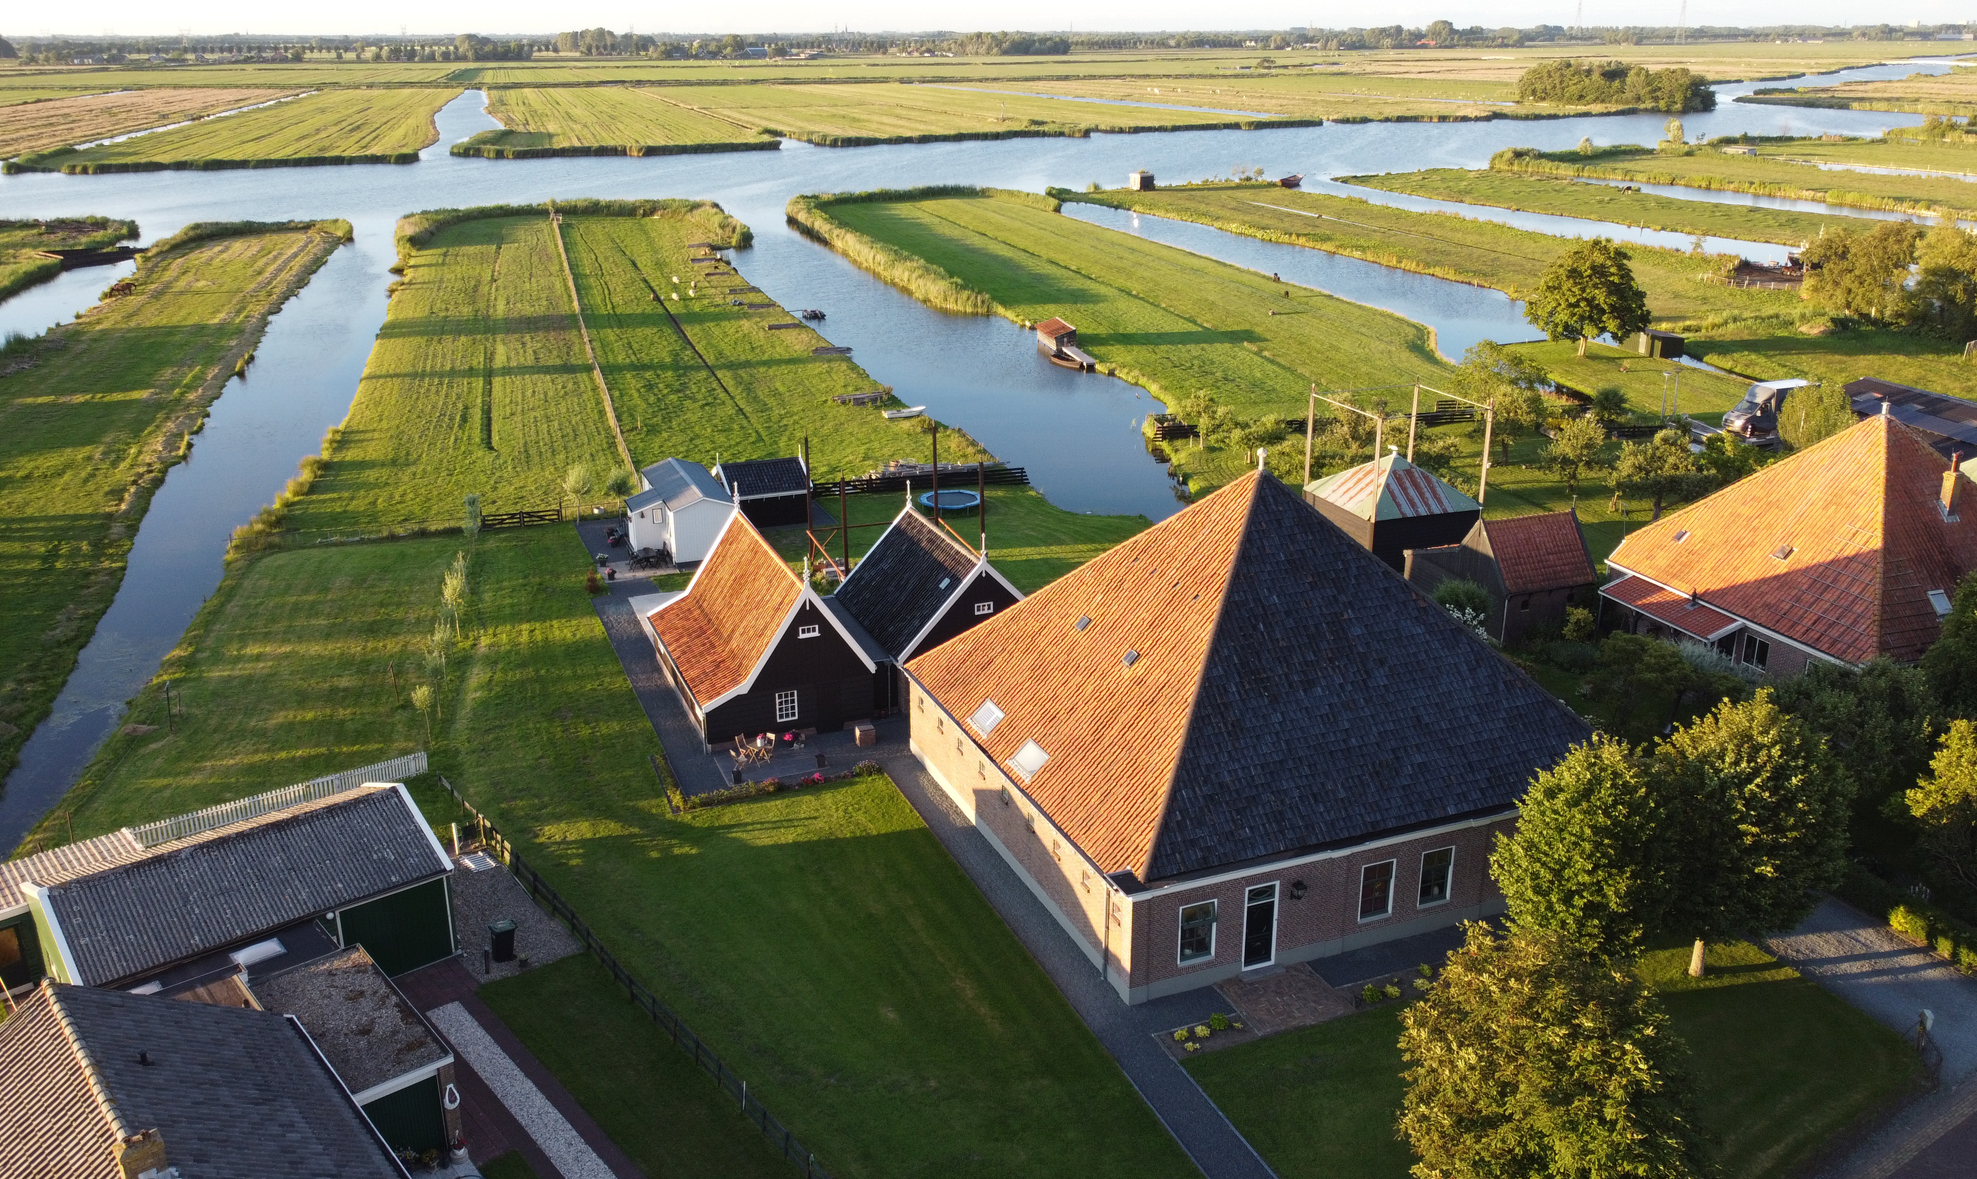 luchtfoto bed and breakfast Welcome in Jisp bij natuurgebied het Jisperveld